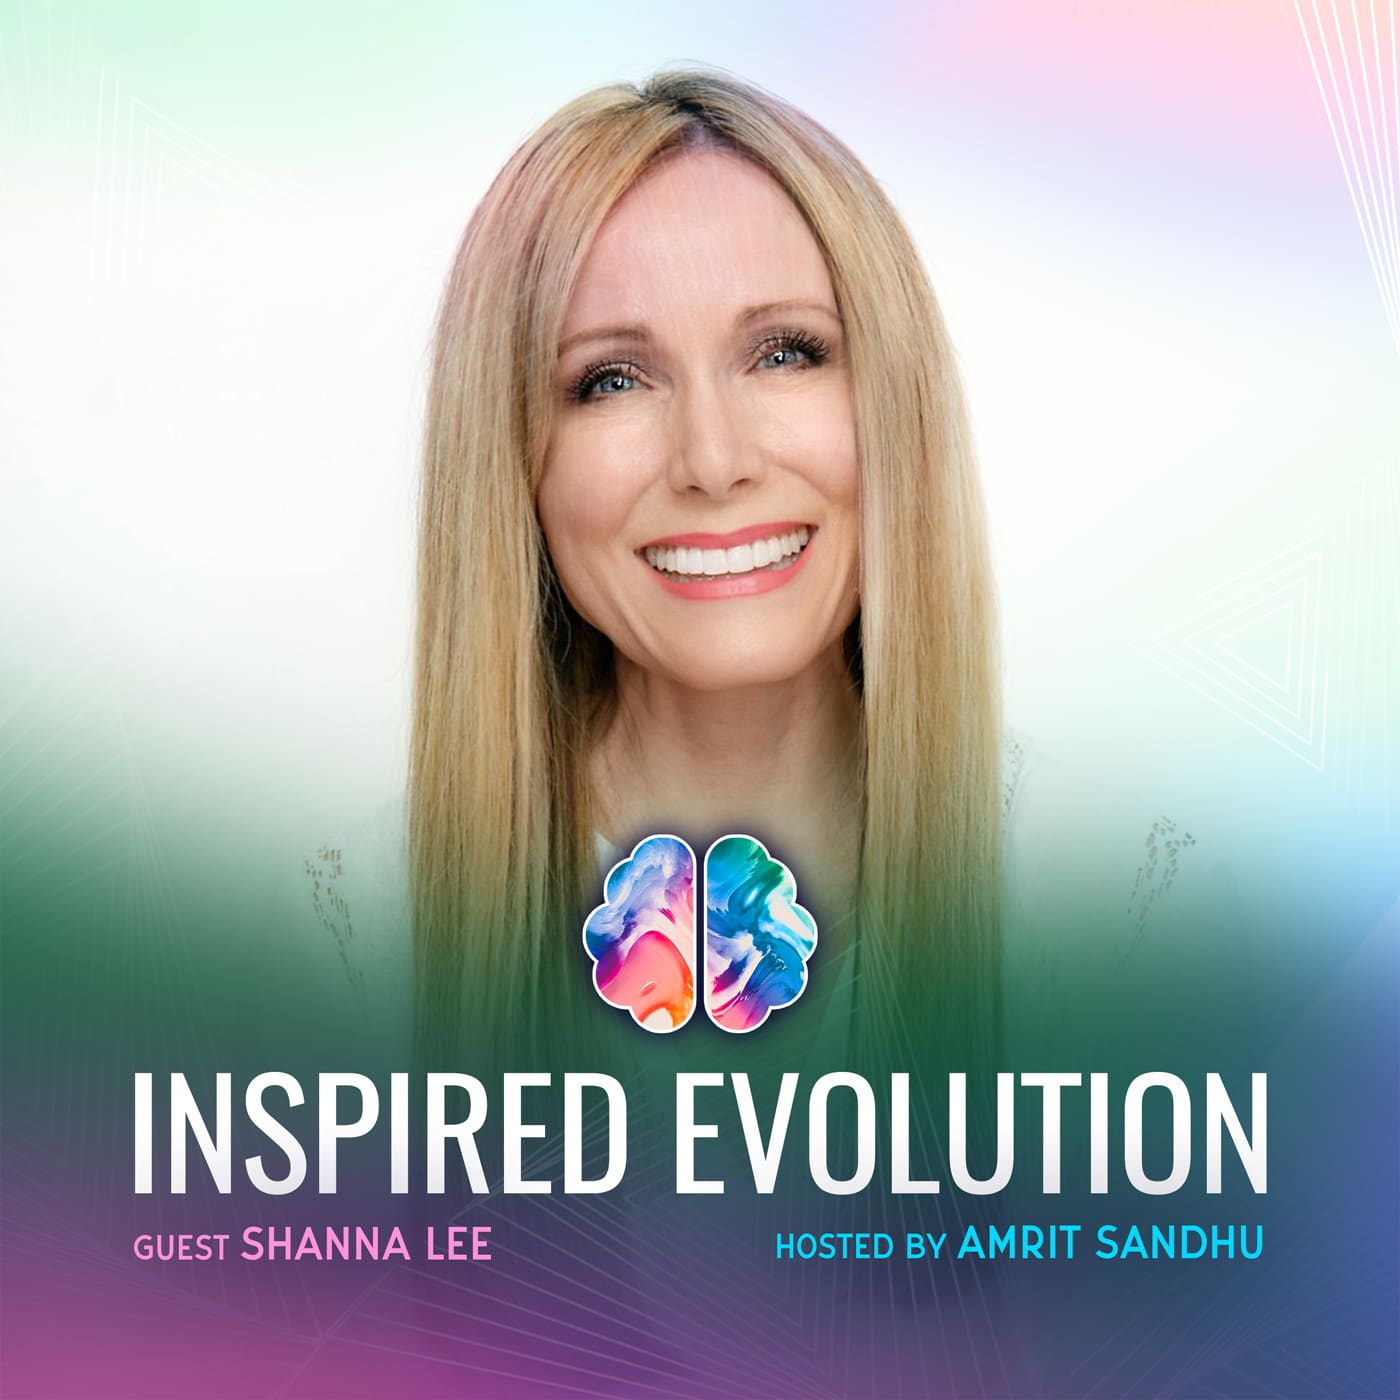 Shanna Lee joins us to talk about The Truth is Ultimate Harmony. Shanna is an intuitive coach, writer, speaker and the founder of The Soul Frequency.